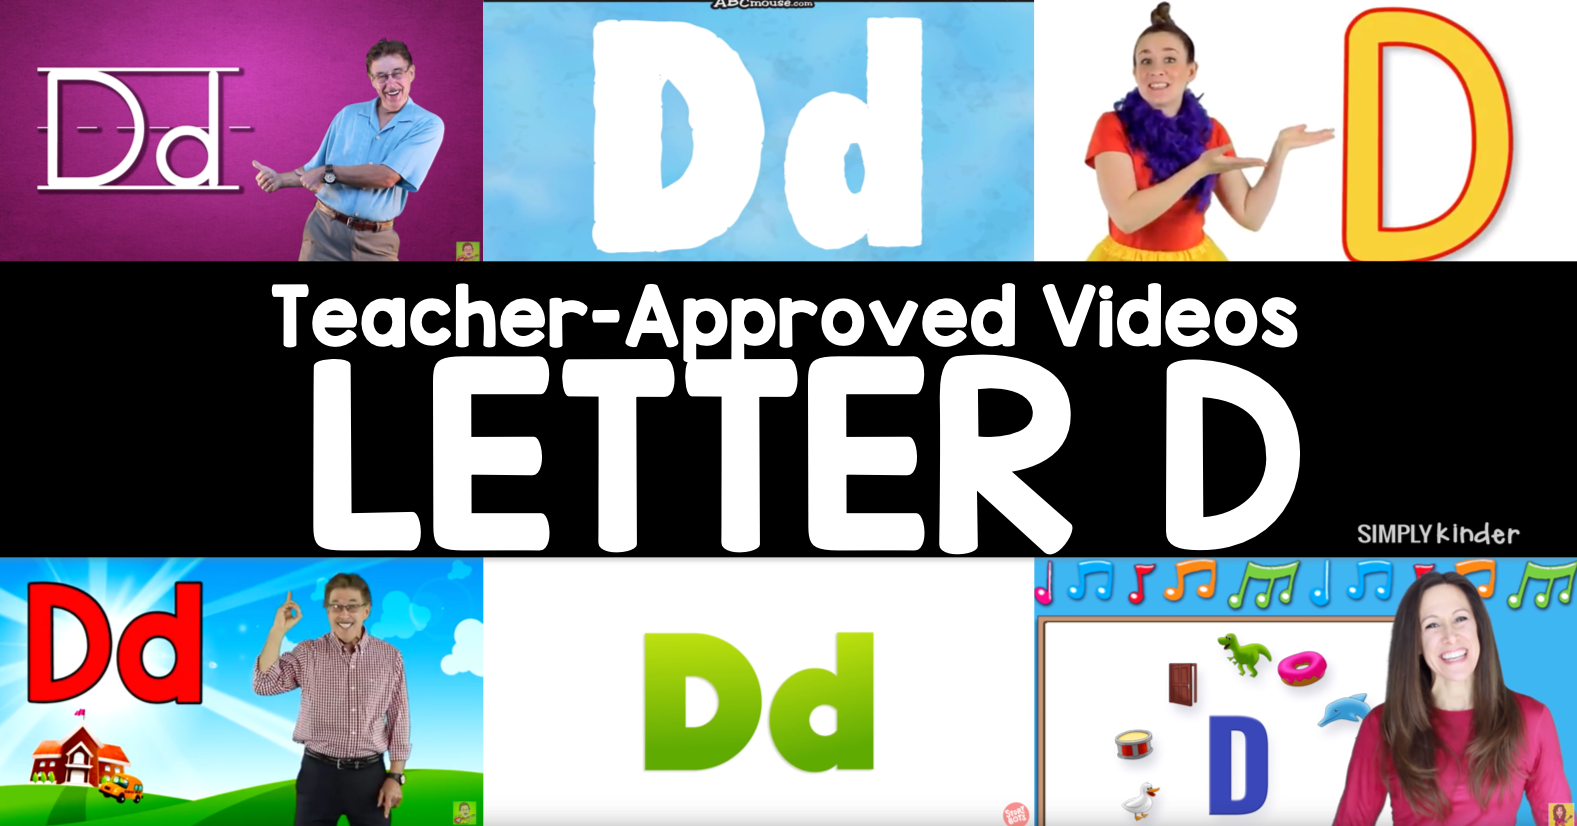 Teacher-Approved Videos Letter D